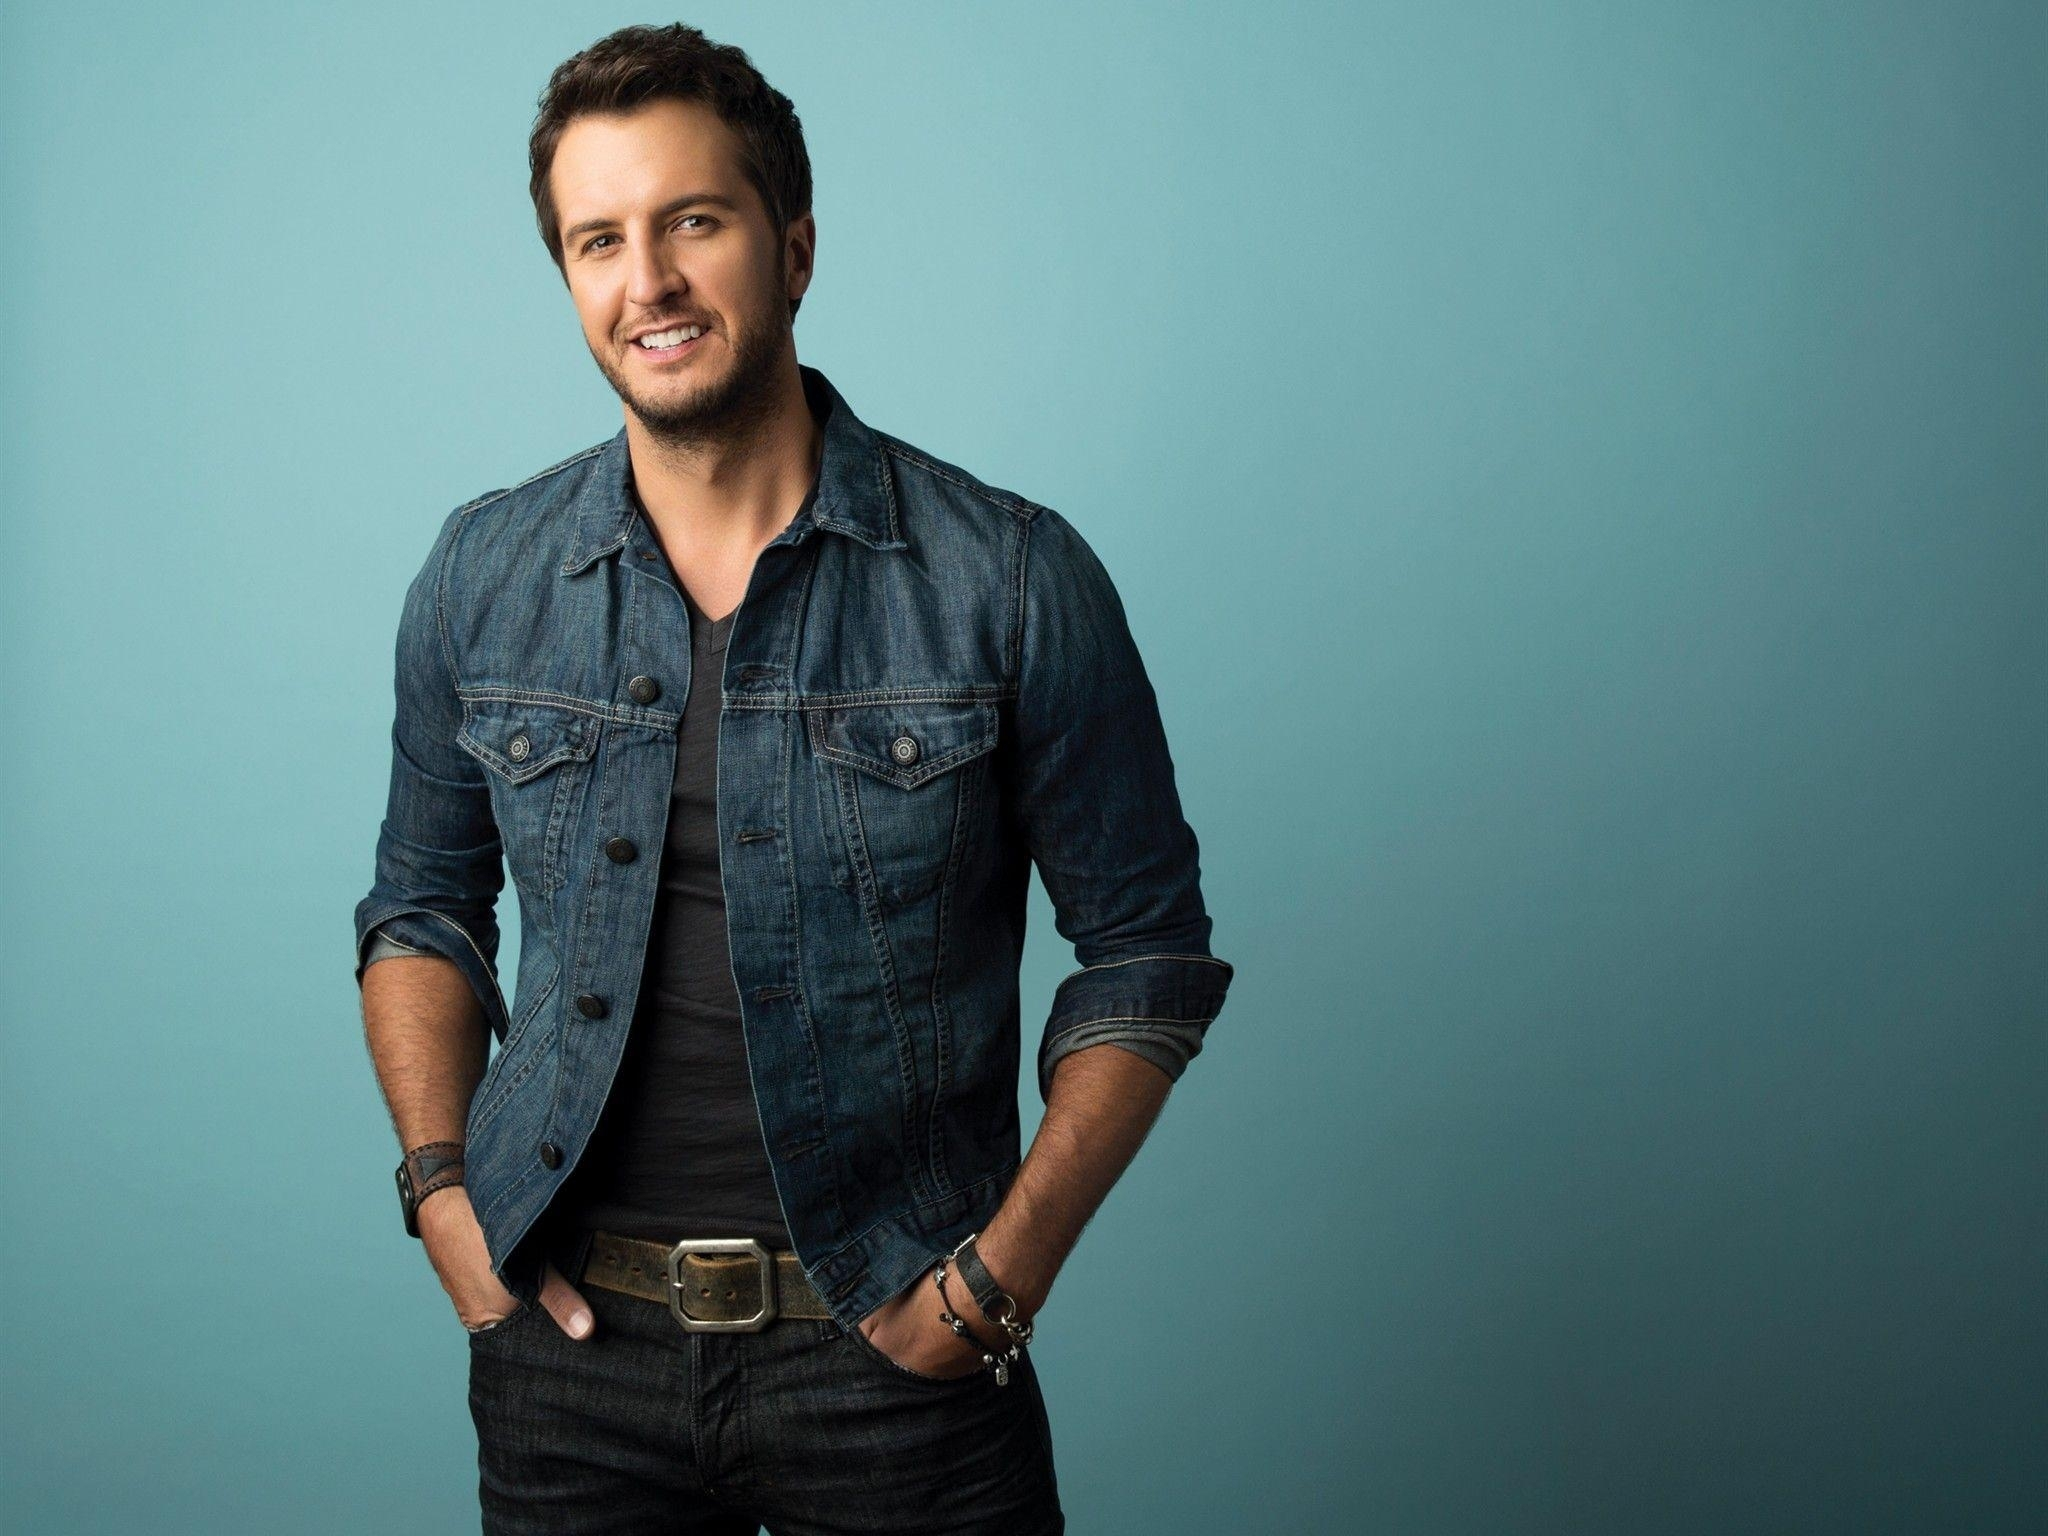 10 Best Luke Bryan Wallpaper 2015 FULL HD 1080p For PC Background